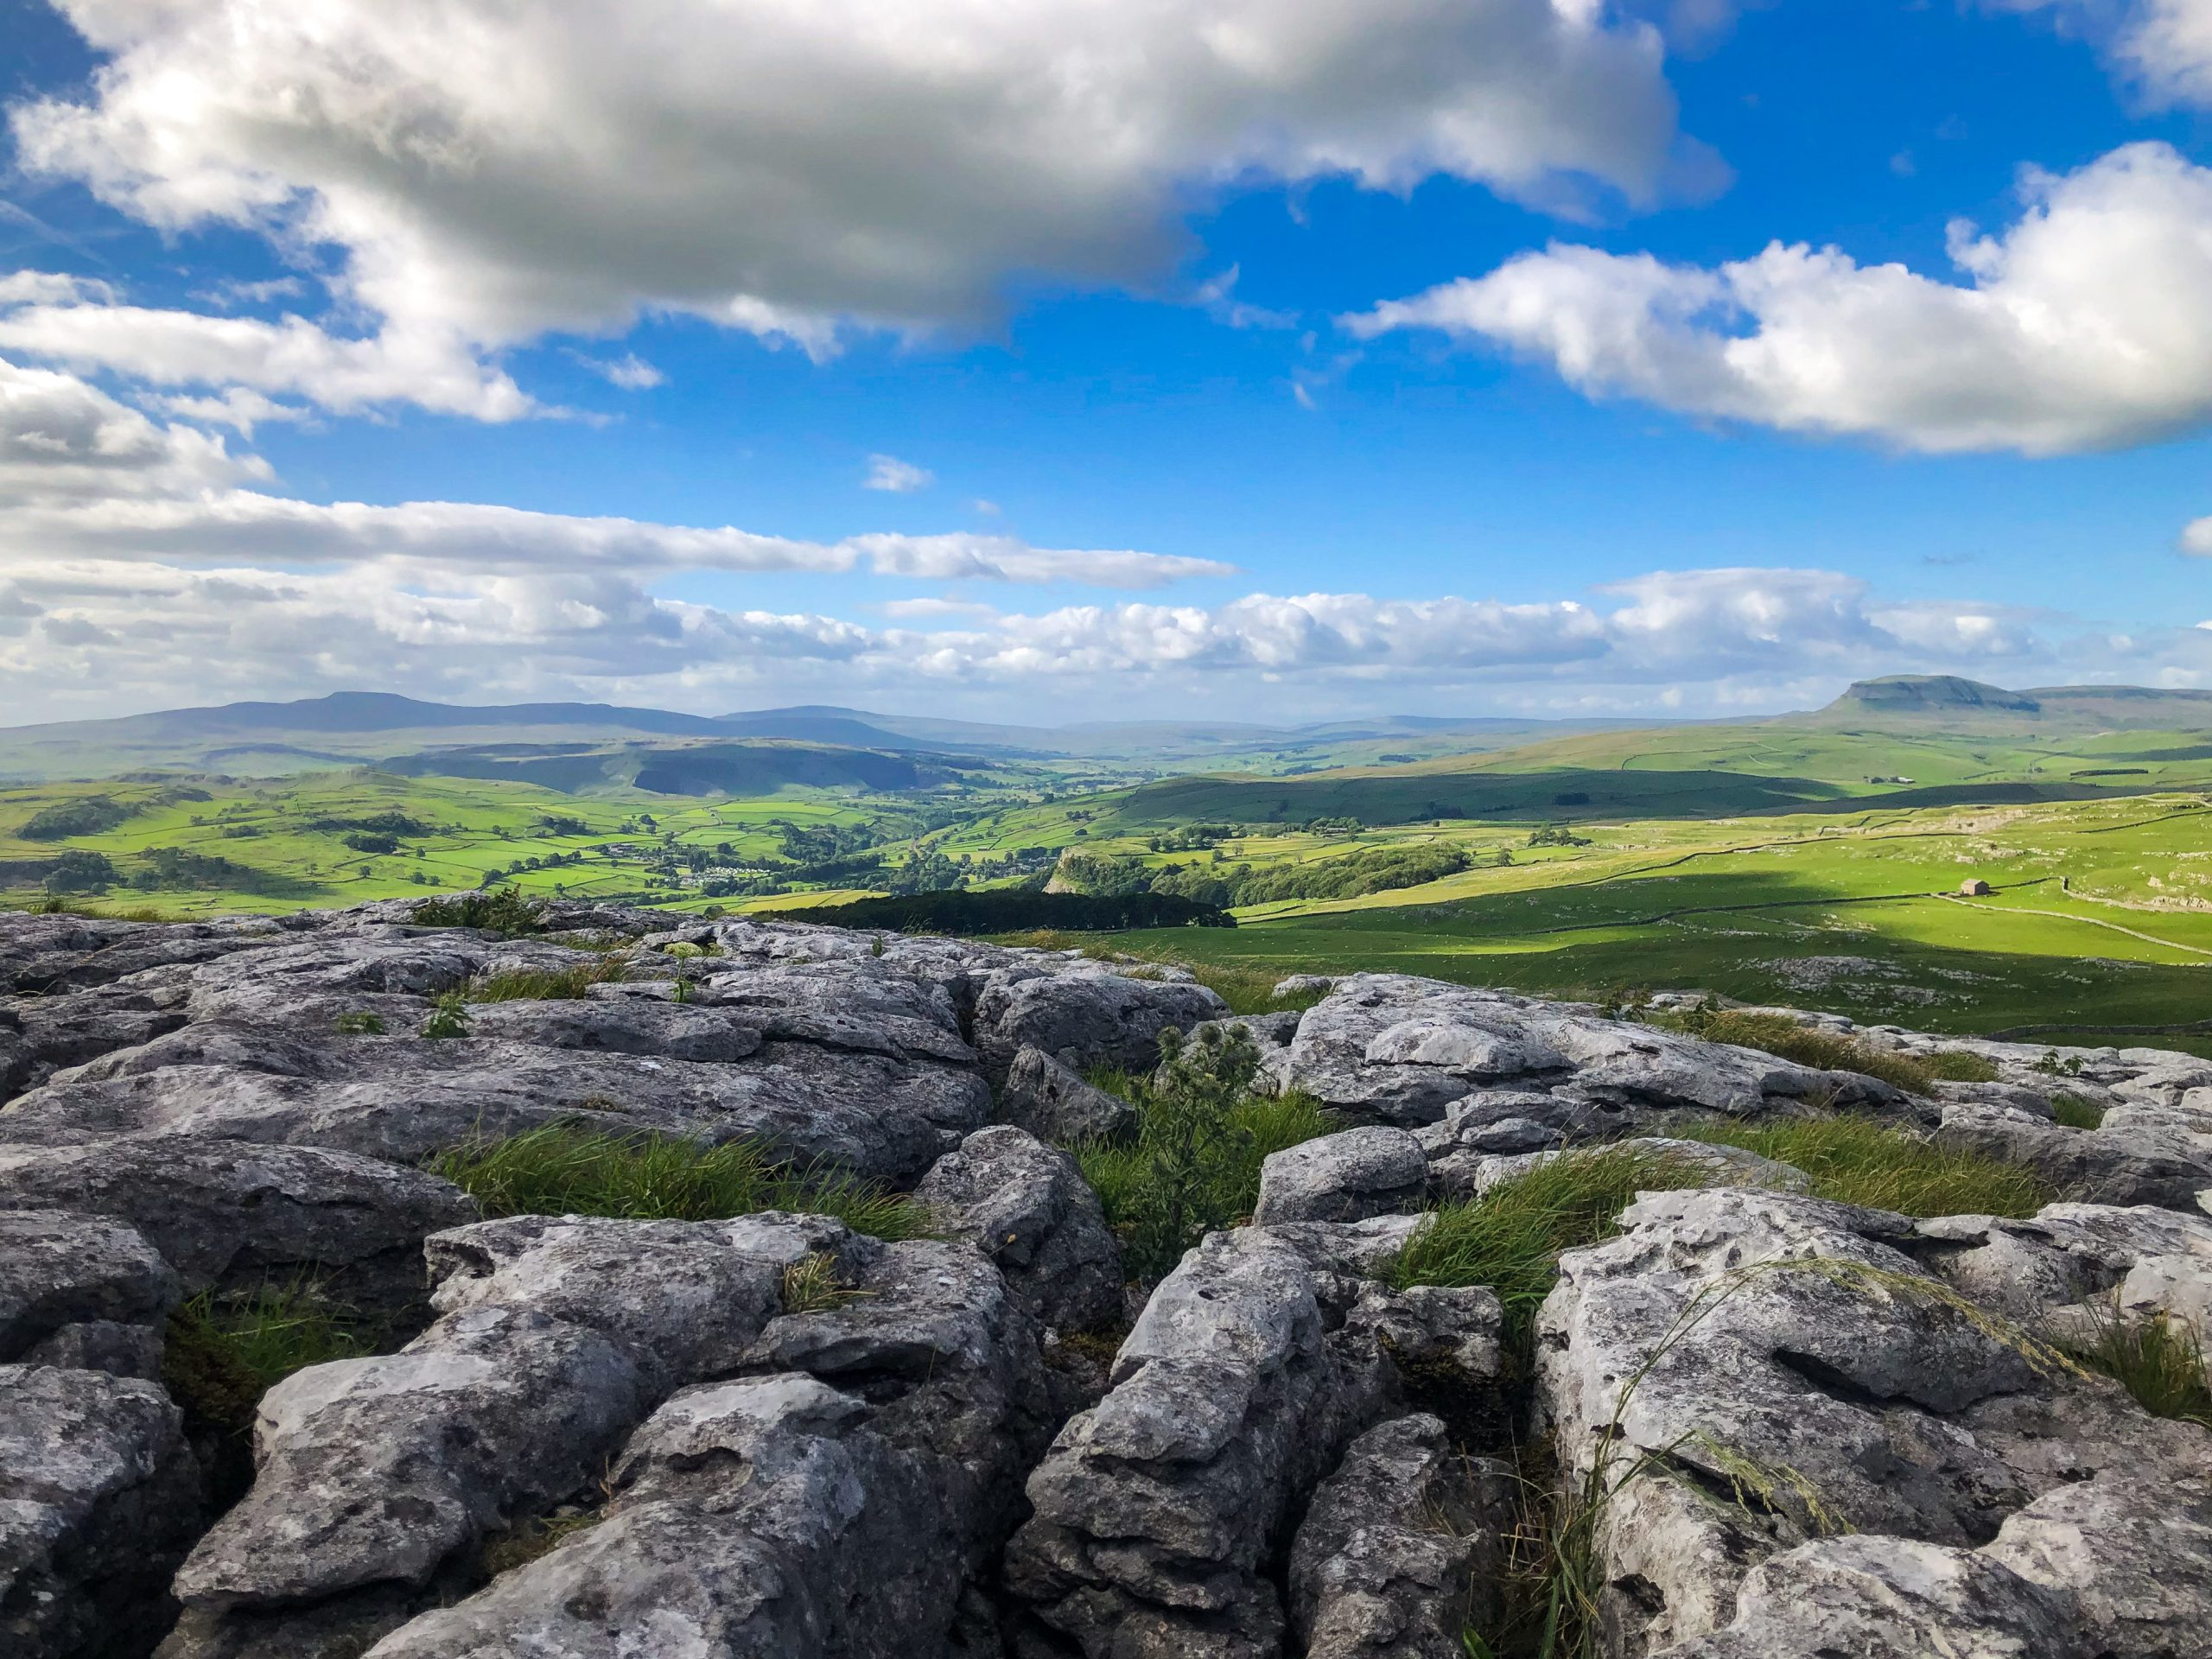 The Yorkshire Three Peaks, will all three peaks visible - Ingleborough, Whernside and Pen y Ghent